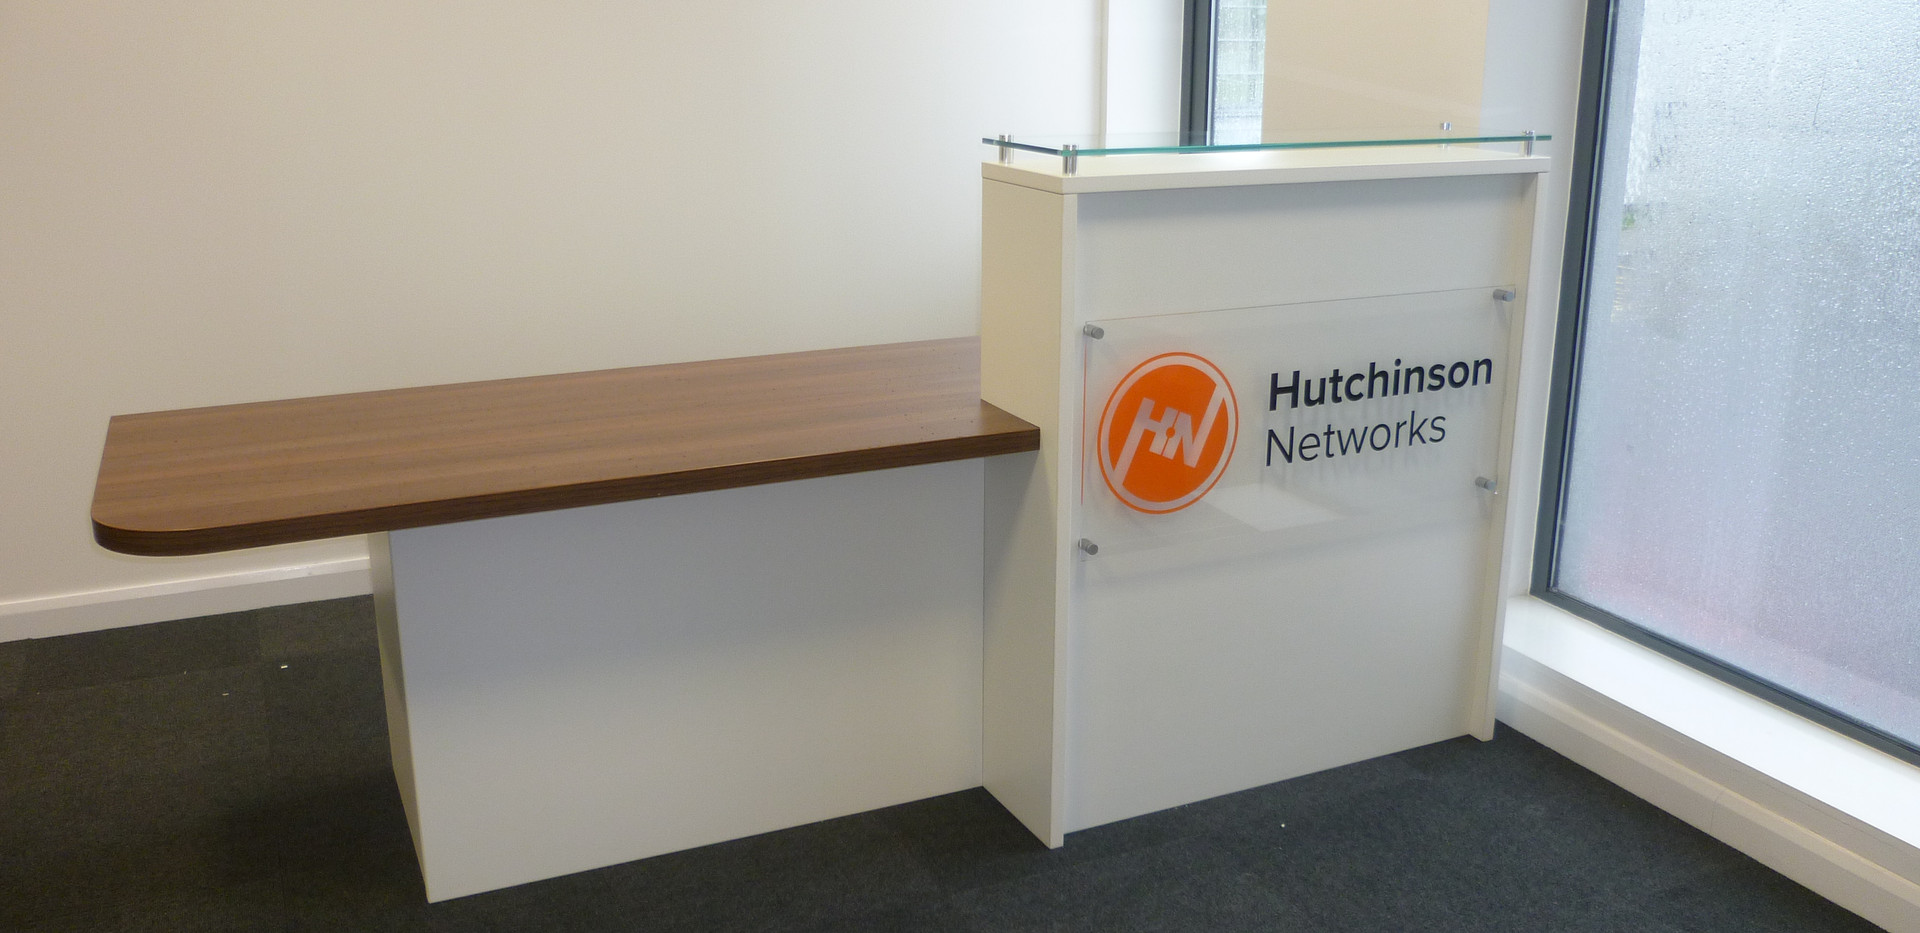 Hutchinson networks counter